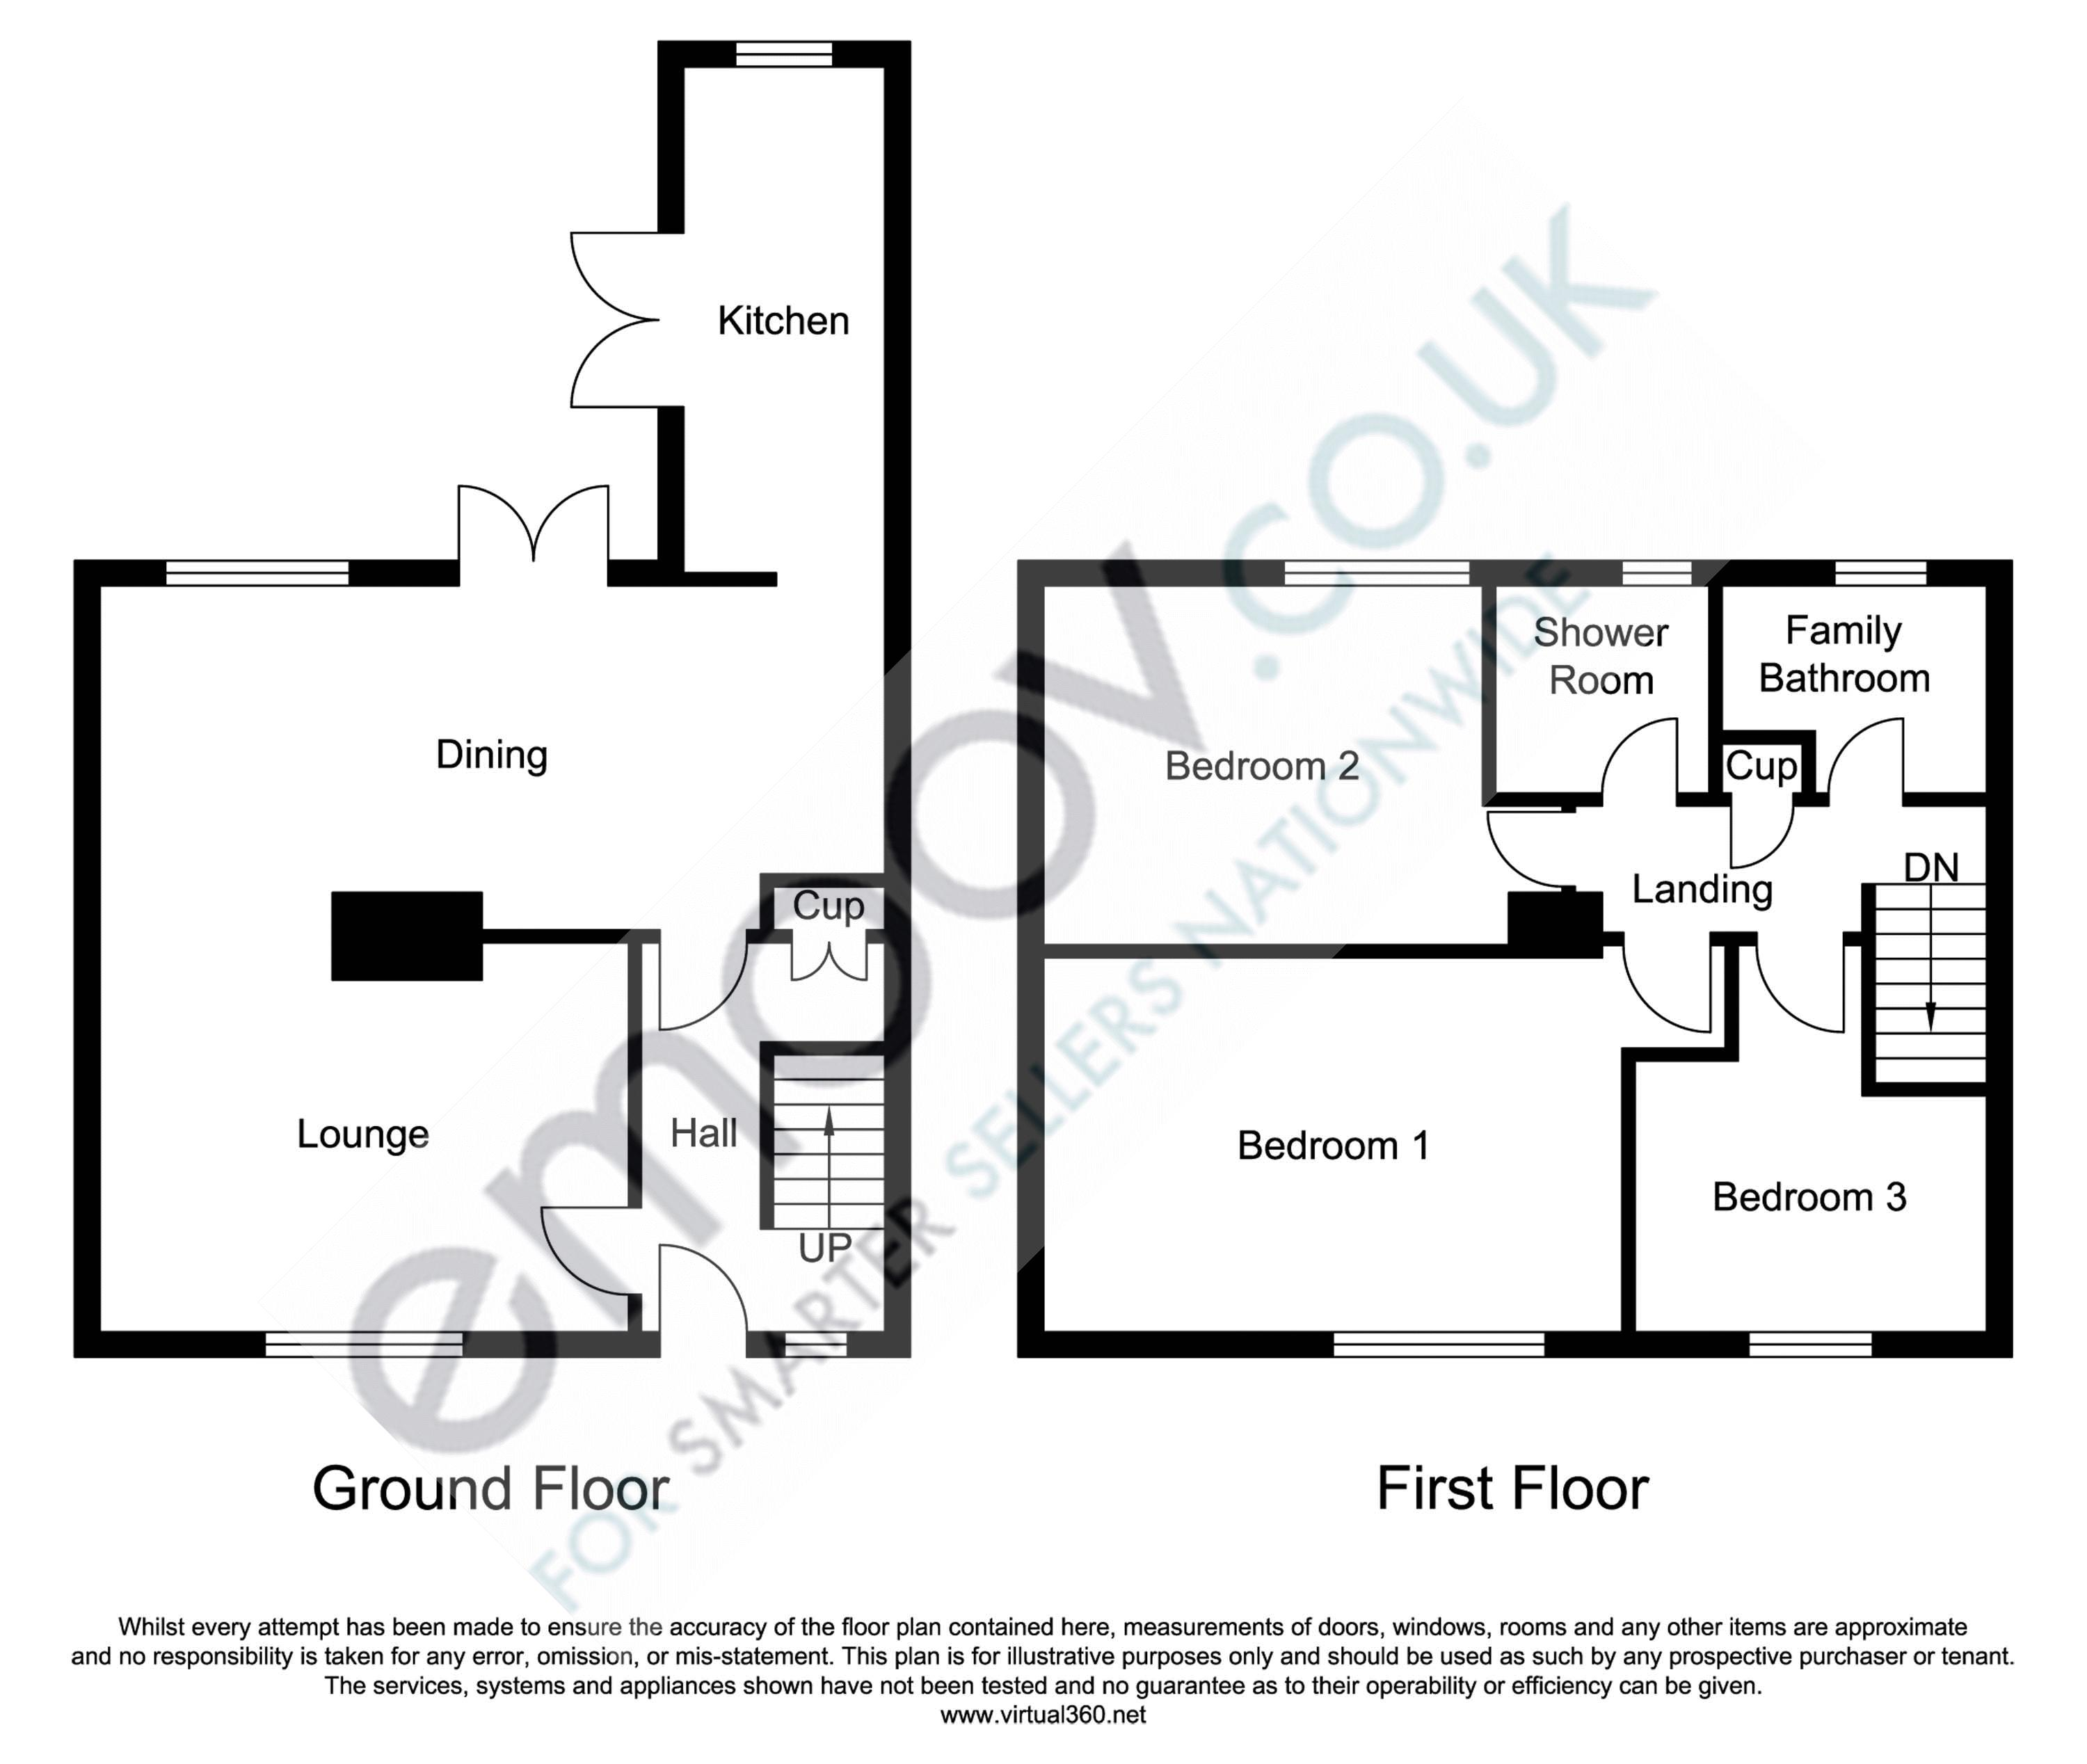 Greenbrow Road, Manchester floor plan